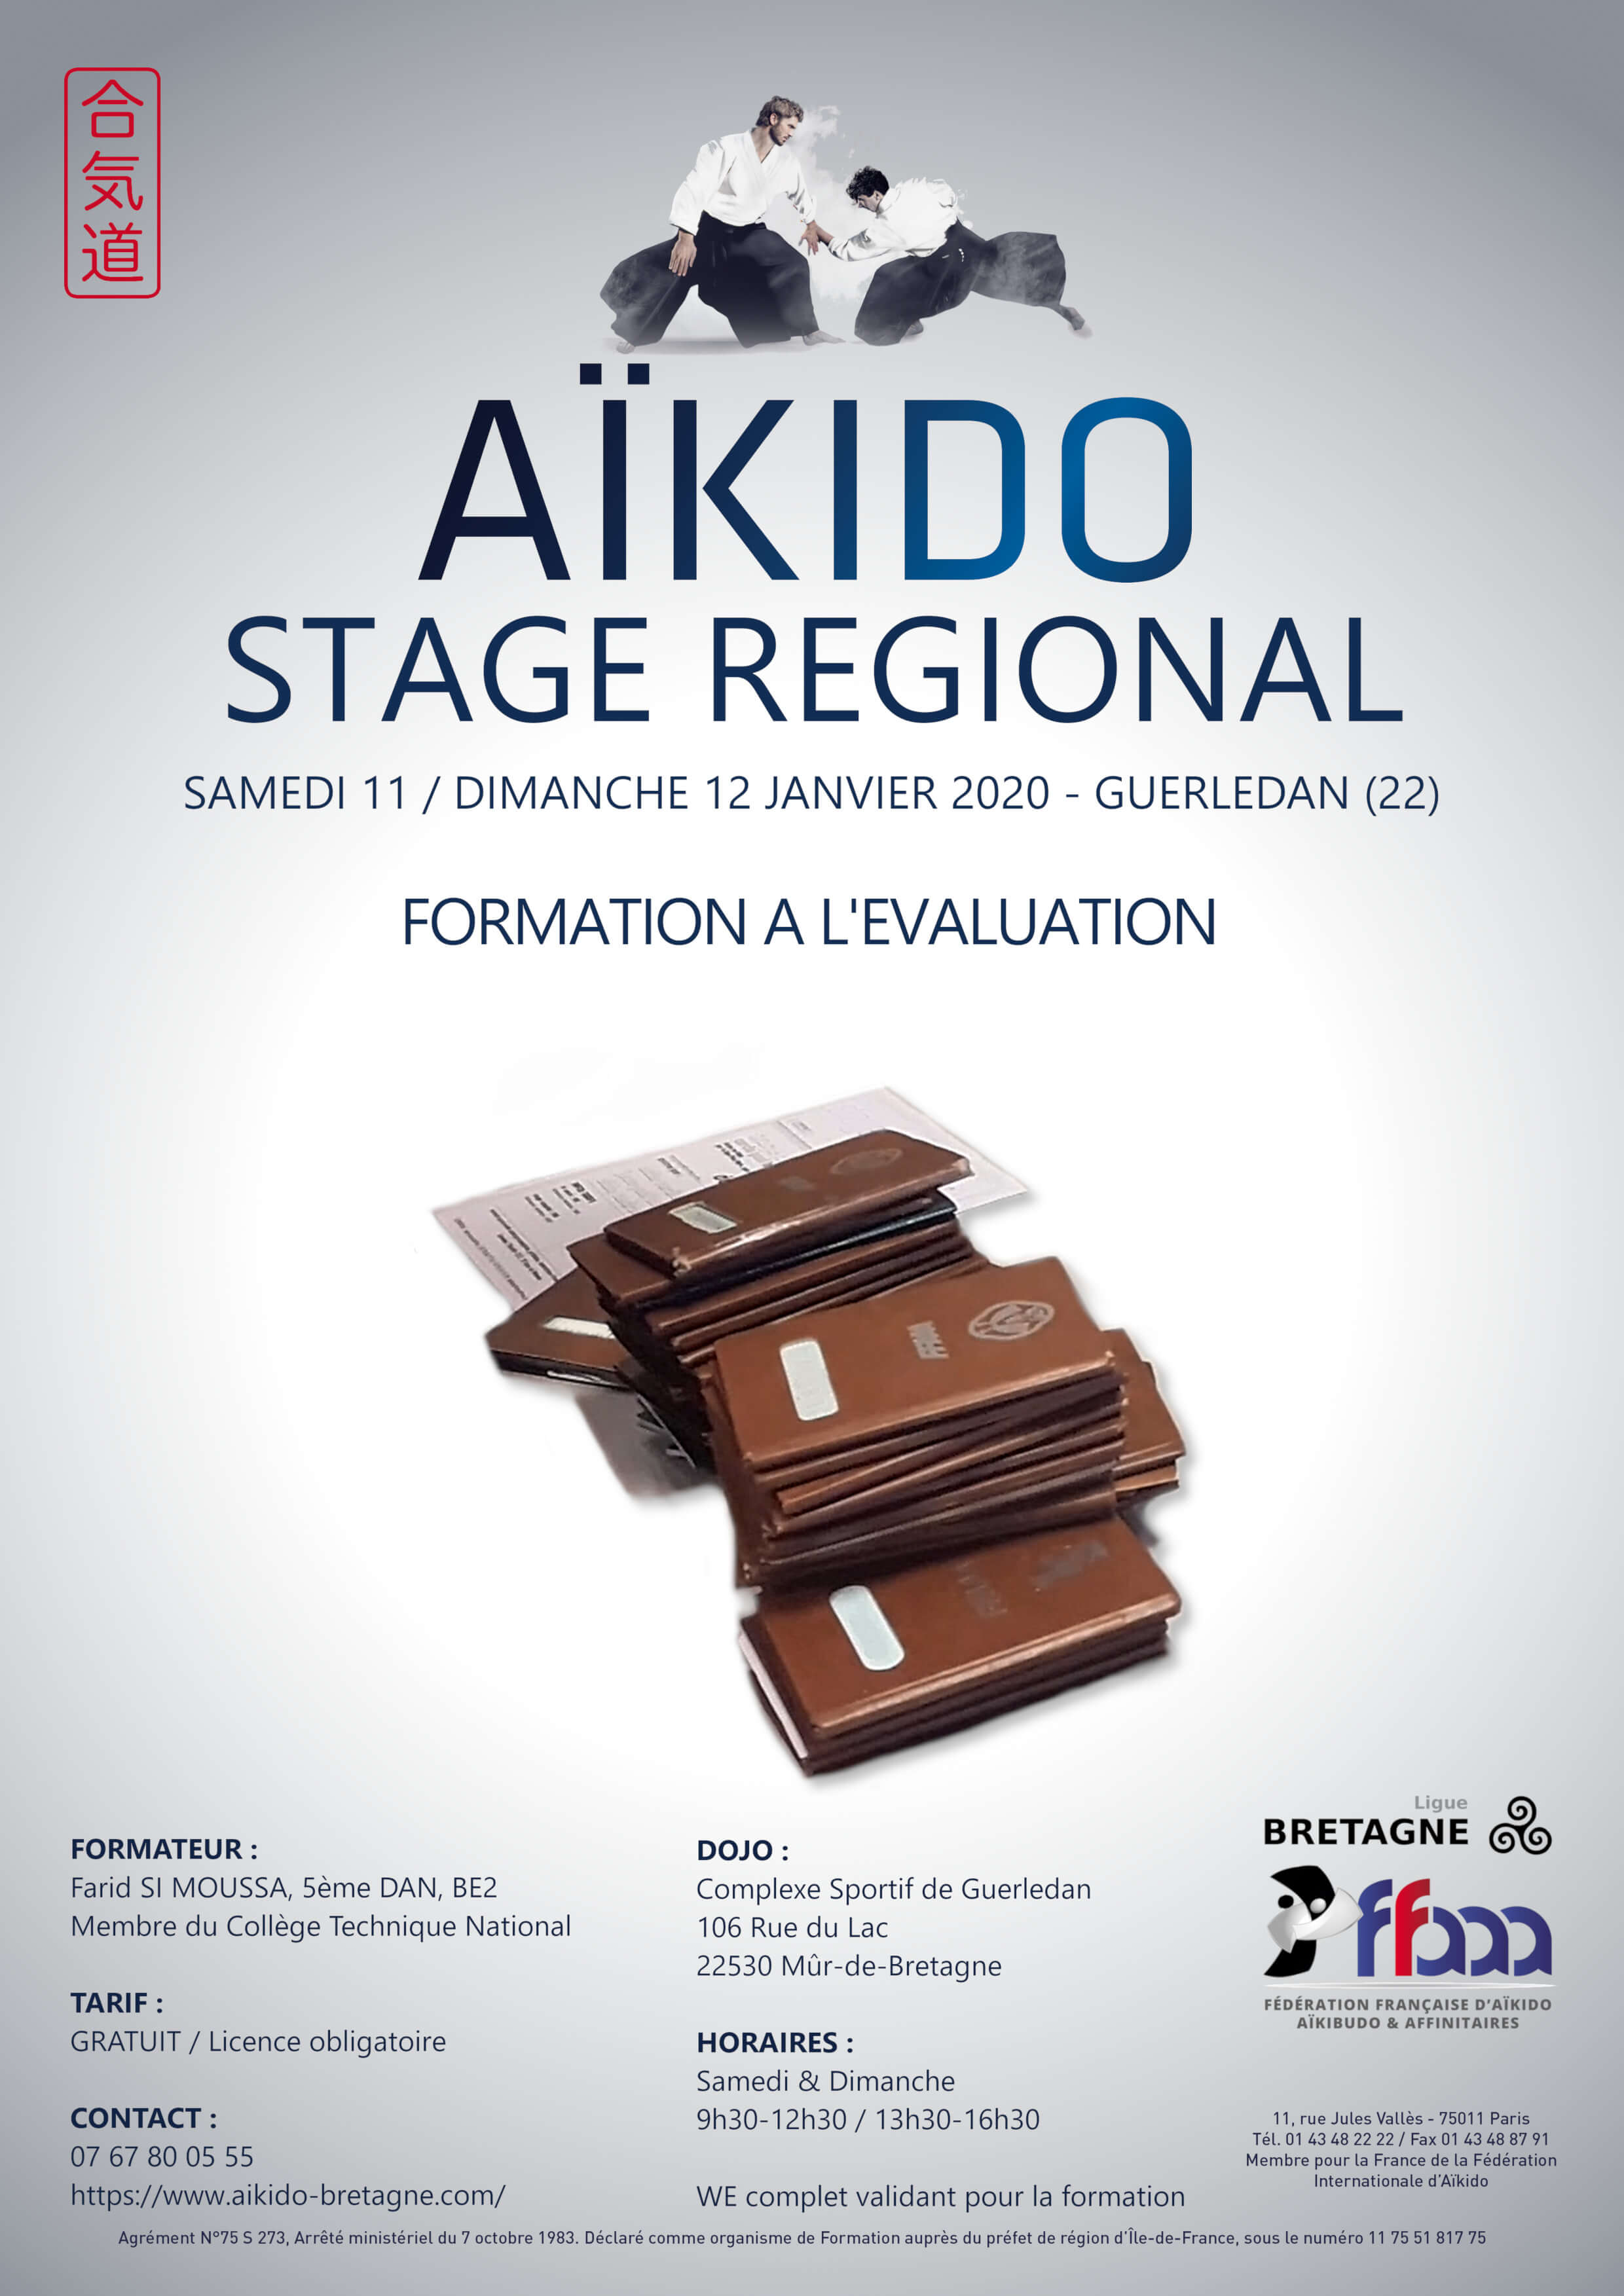 https://www.aikido-bretagne.com/wp-content/uploads/2019/10/Affiche-Stage-formation-evaluation-11-12-jan-2020-Guerledan-A4-comp